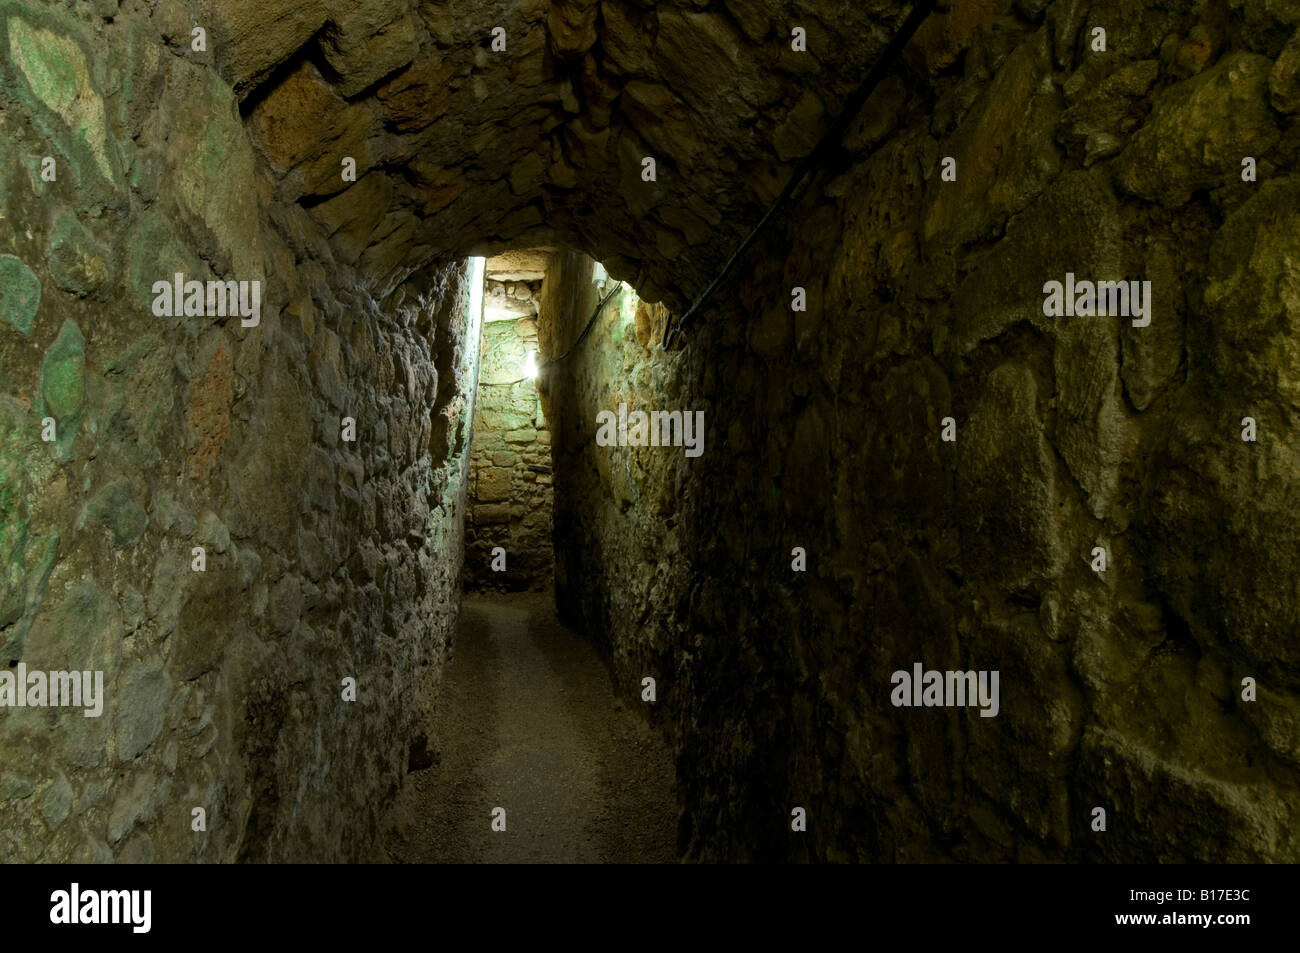 Supply and escape tunnel leading from the Crusader citadel to the port - Crusader citadel, Old Acre (Akko), Israel. - Stock Image